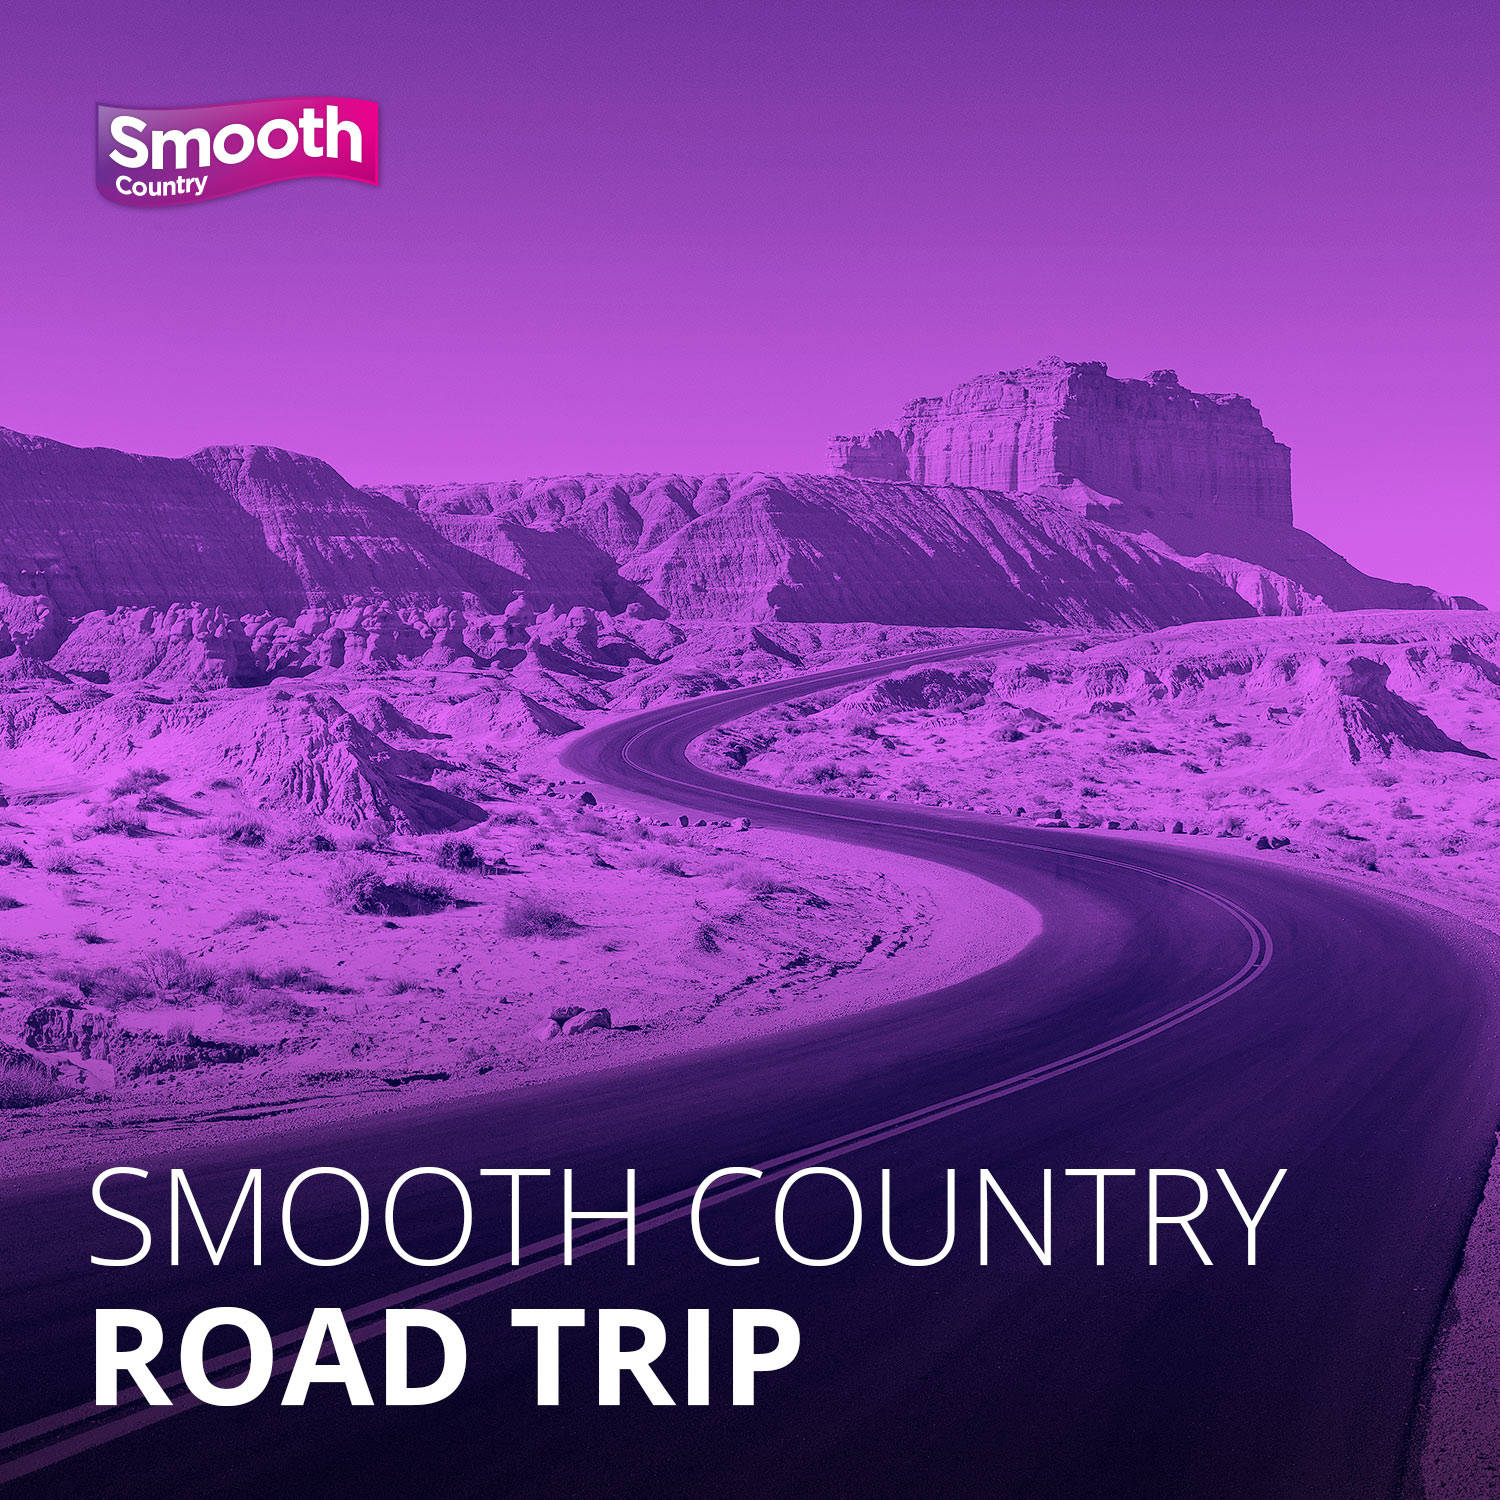 Smooth Country Road Trip image